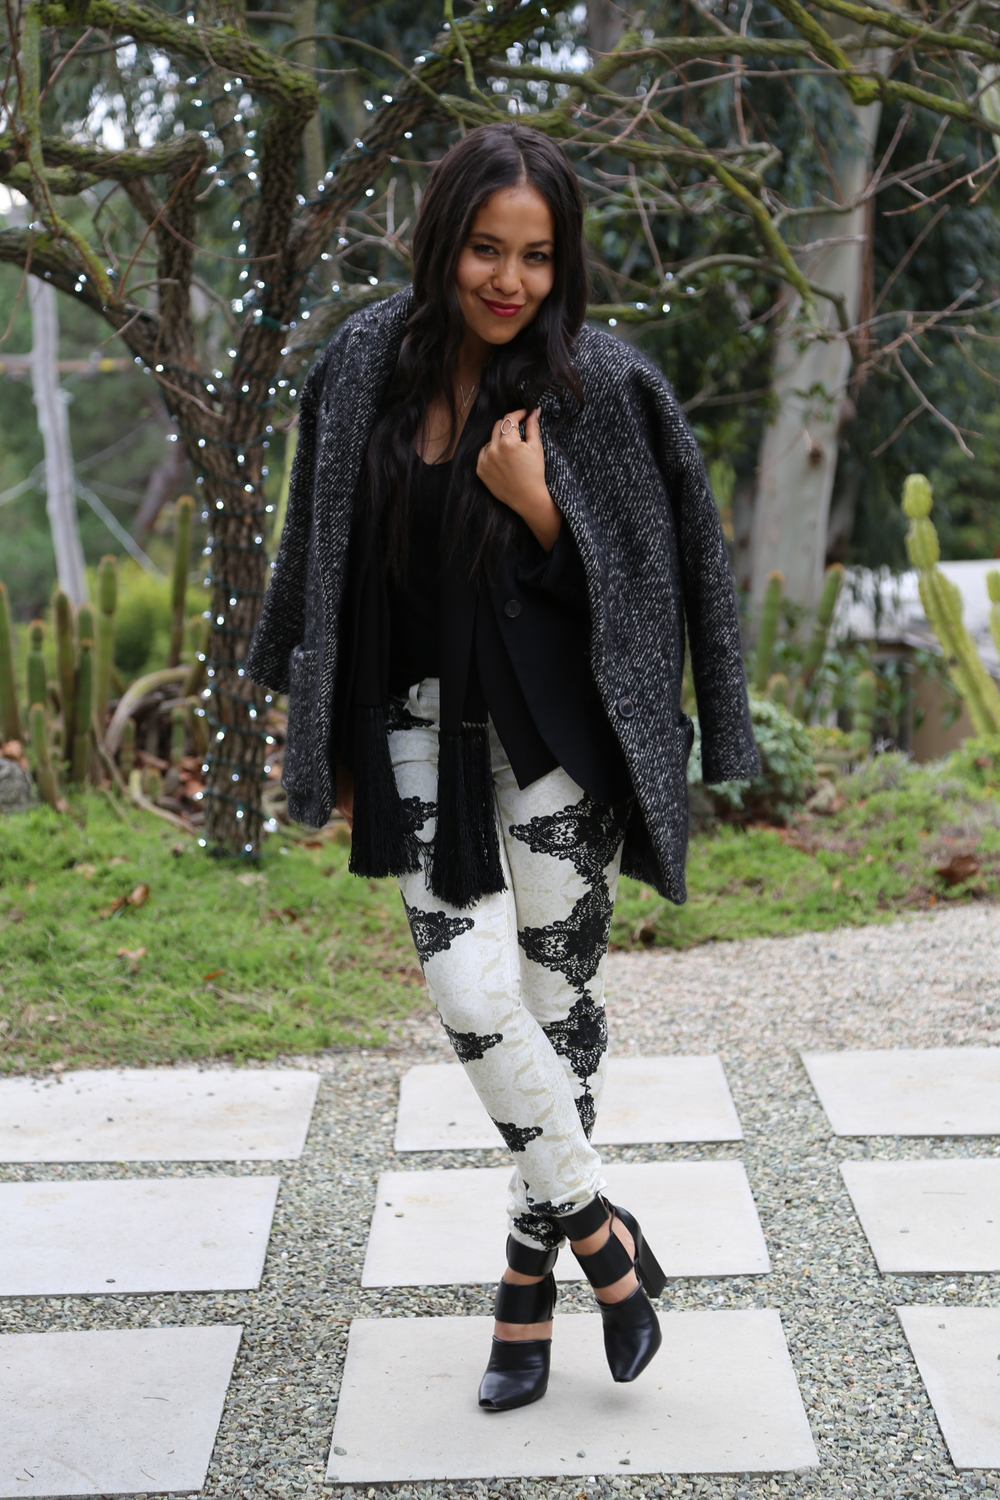 7-FOR-ALL-MANKIND-JEANS-ALEXANDER-WANG-VEST-CAGE-HEELS-ISABEL-MARANT-COAT-LOS-ANGELES.JPG